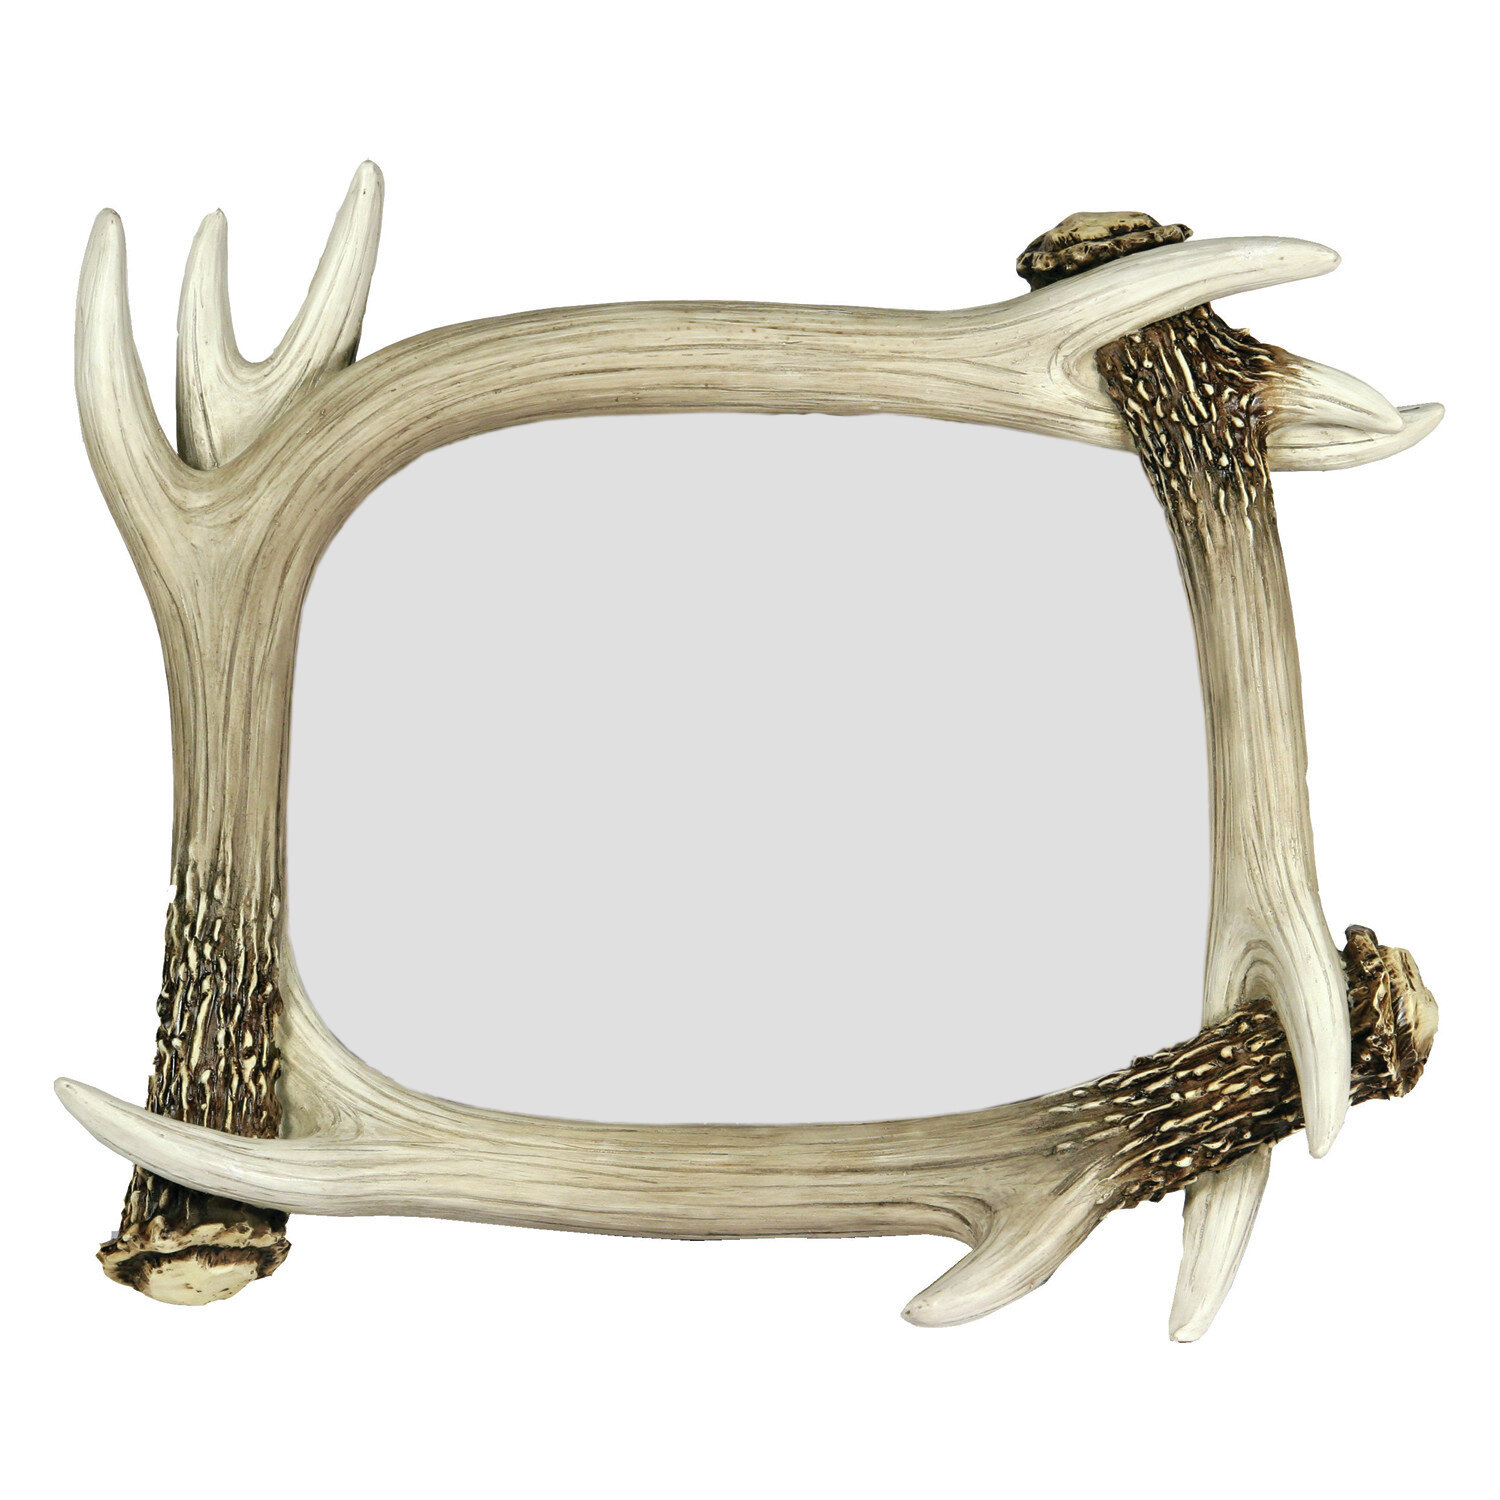 Rivers Edge Products Deer Antler Picture Frame Wayfair